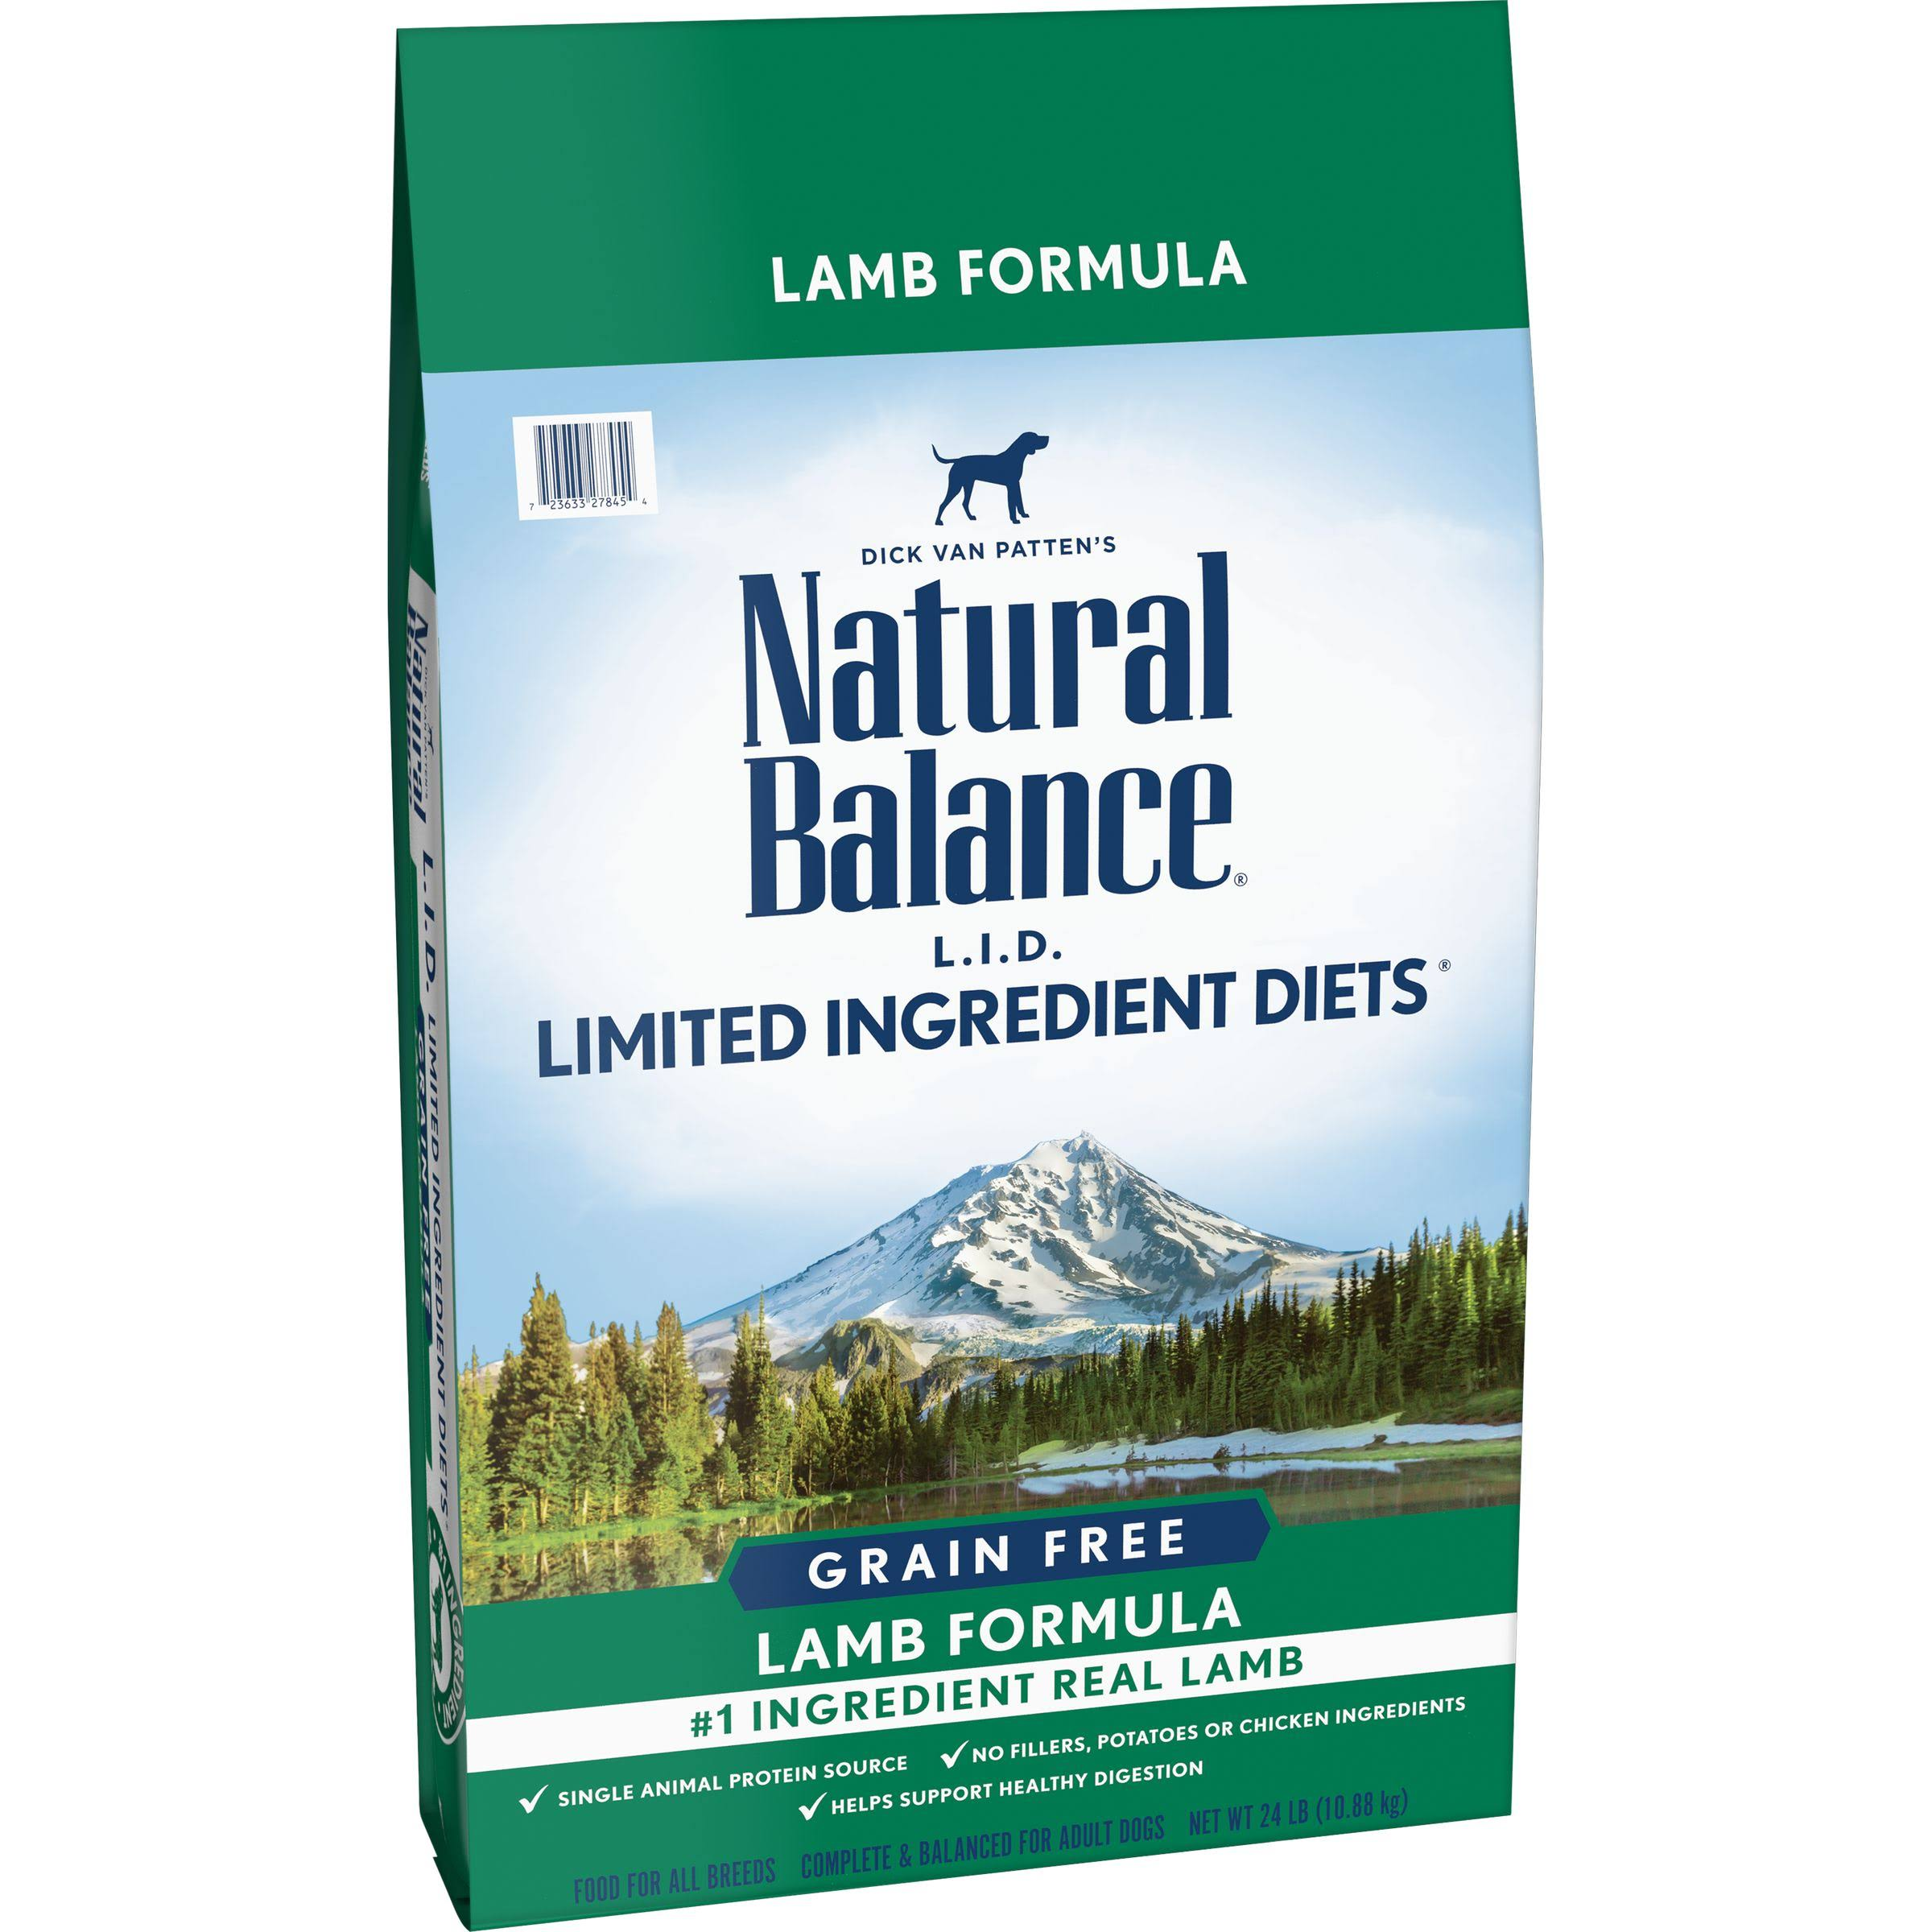 Natural Balance Limited Ingredient Diets High Protein Dry Dog Food - 24lbs